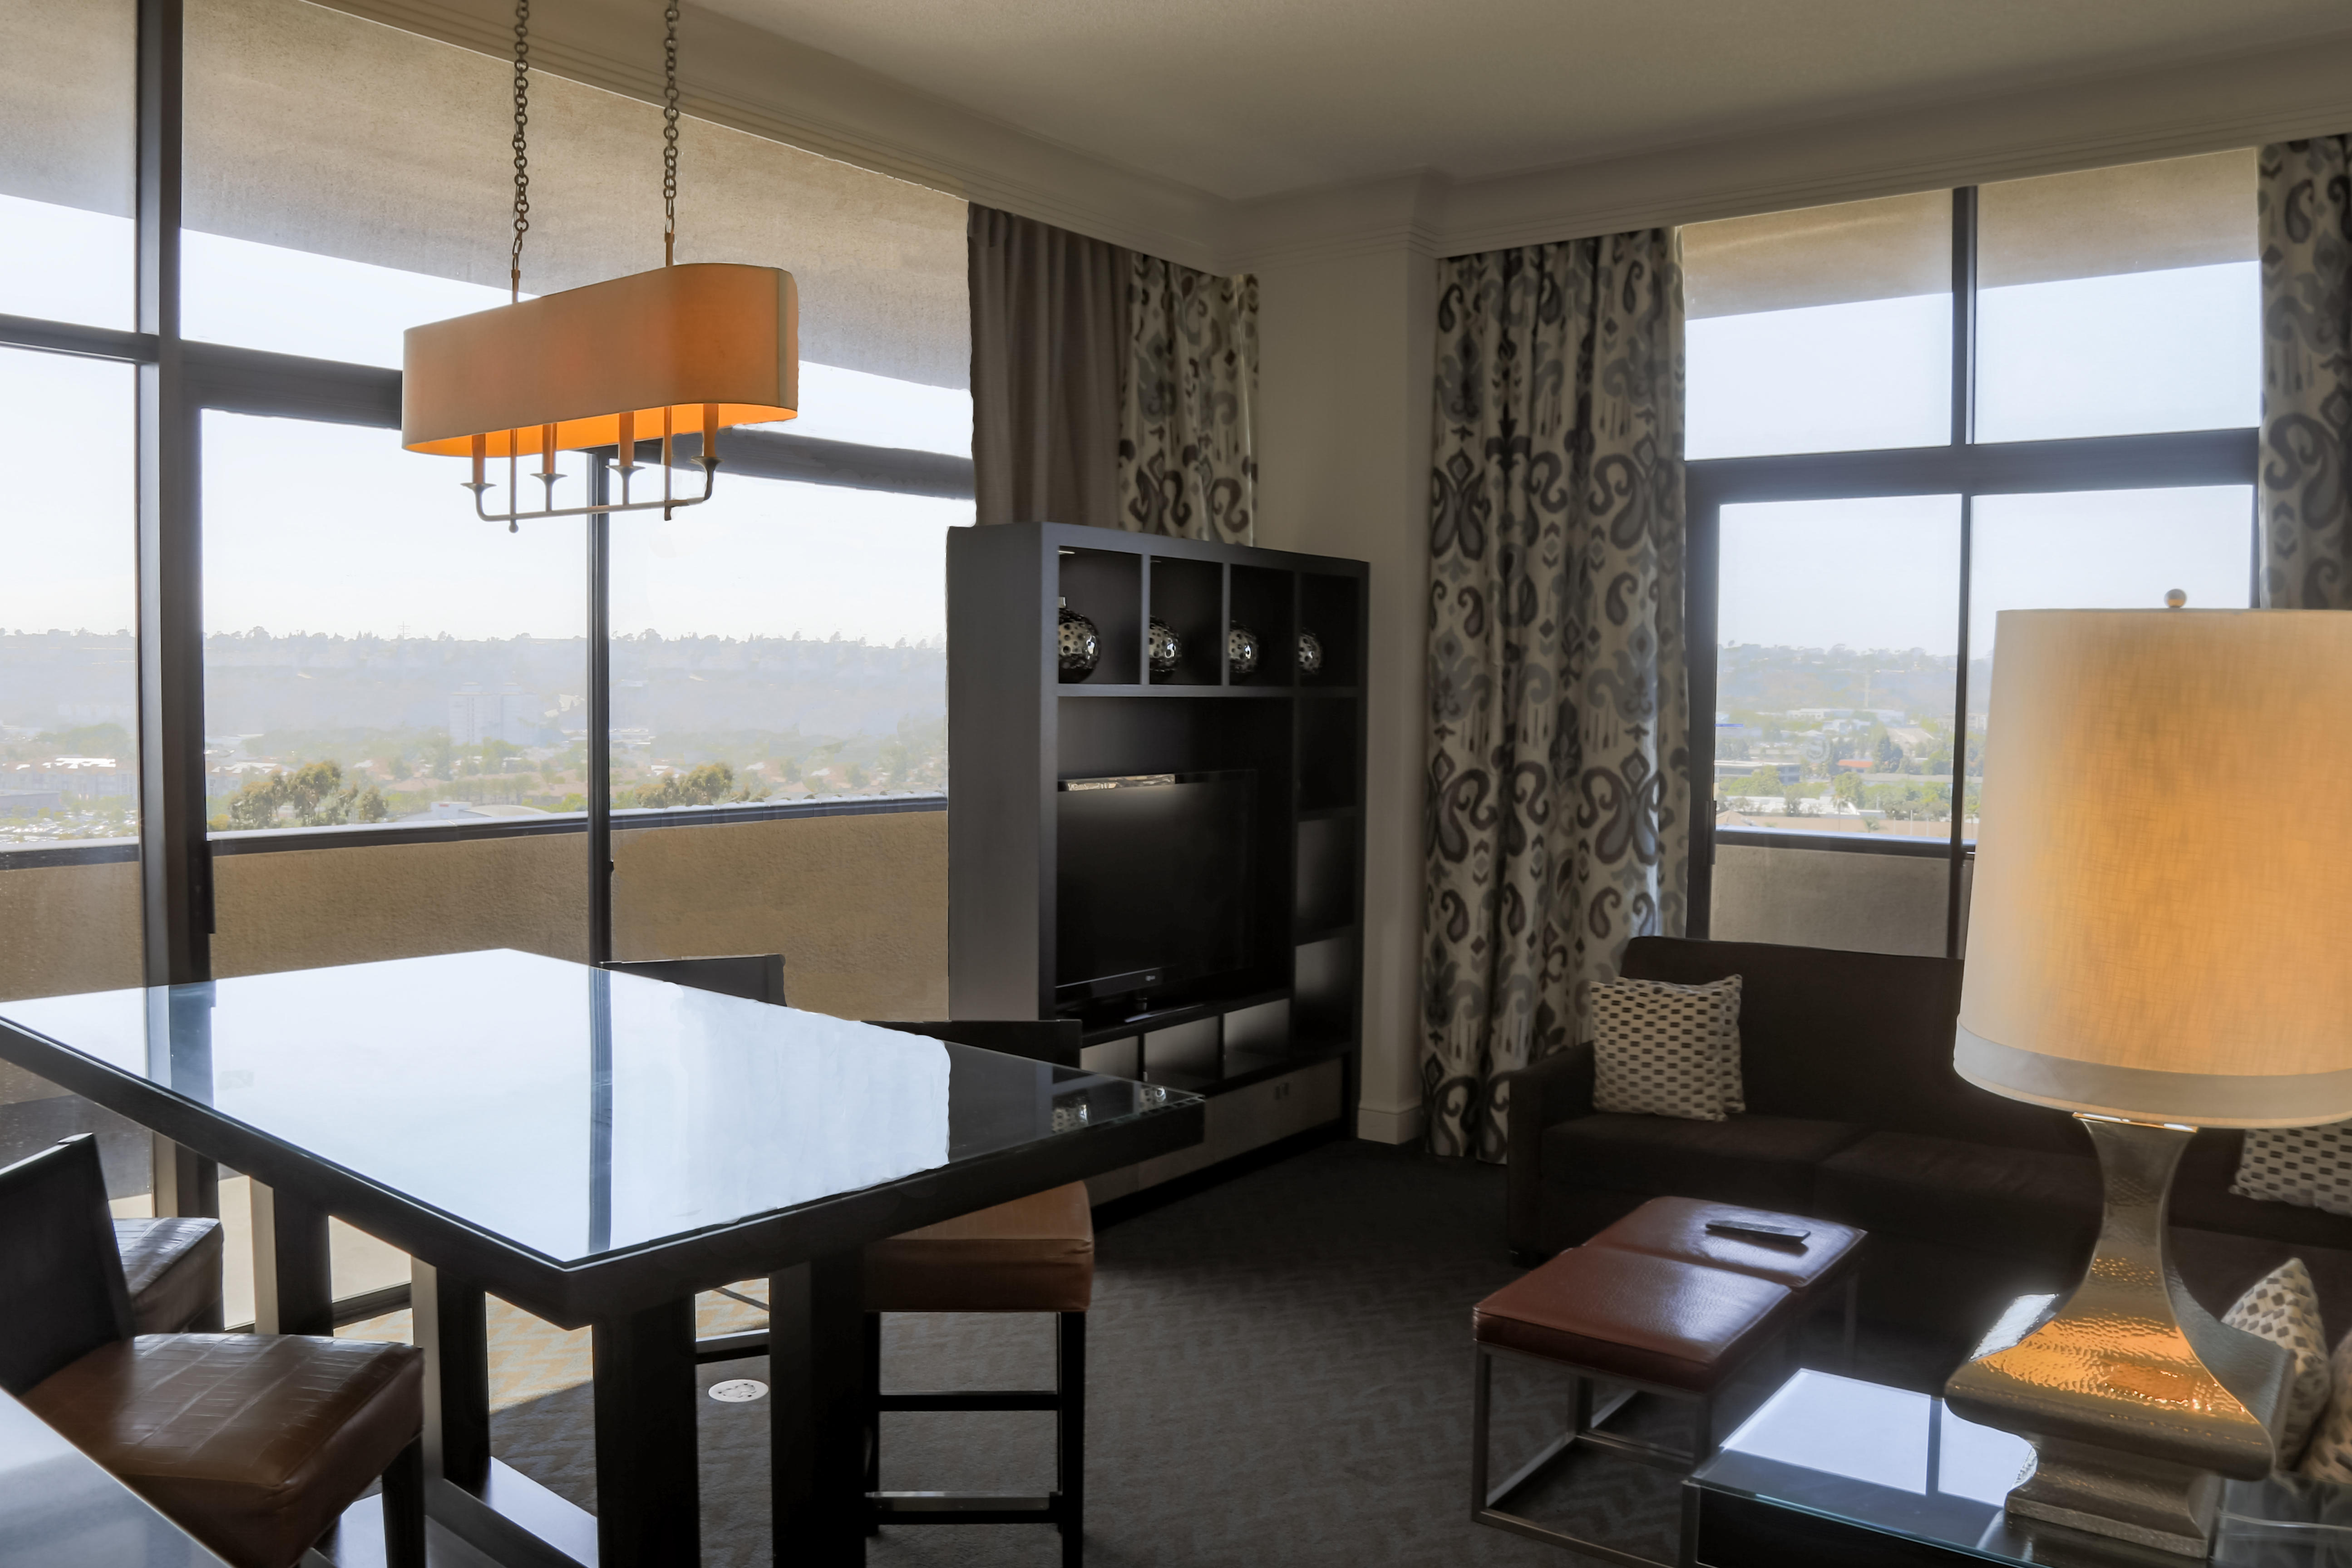 sheraton mission valley san diego hotel at 1433 camino del. Black Bedroom Furniture Sets. Home Design Ideas